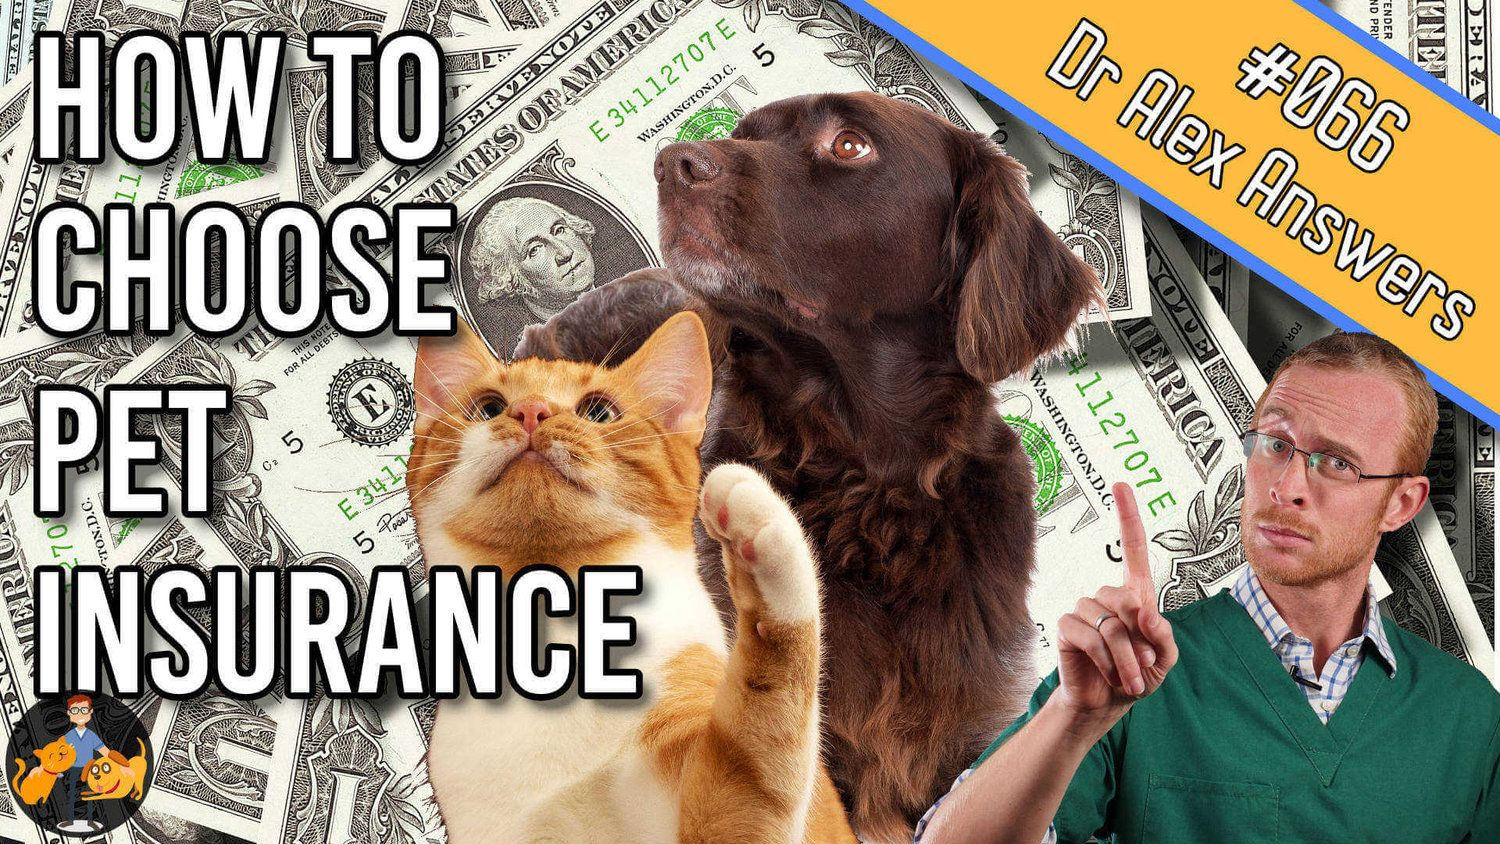 How to choose the best pet insurance in 6 steps best